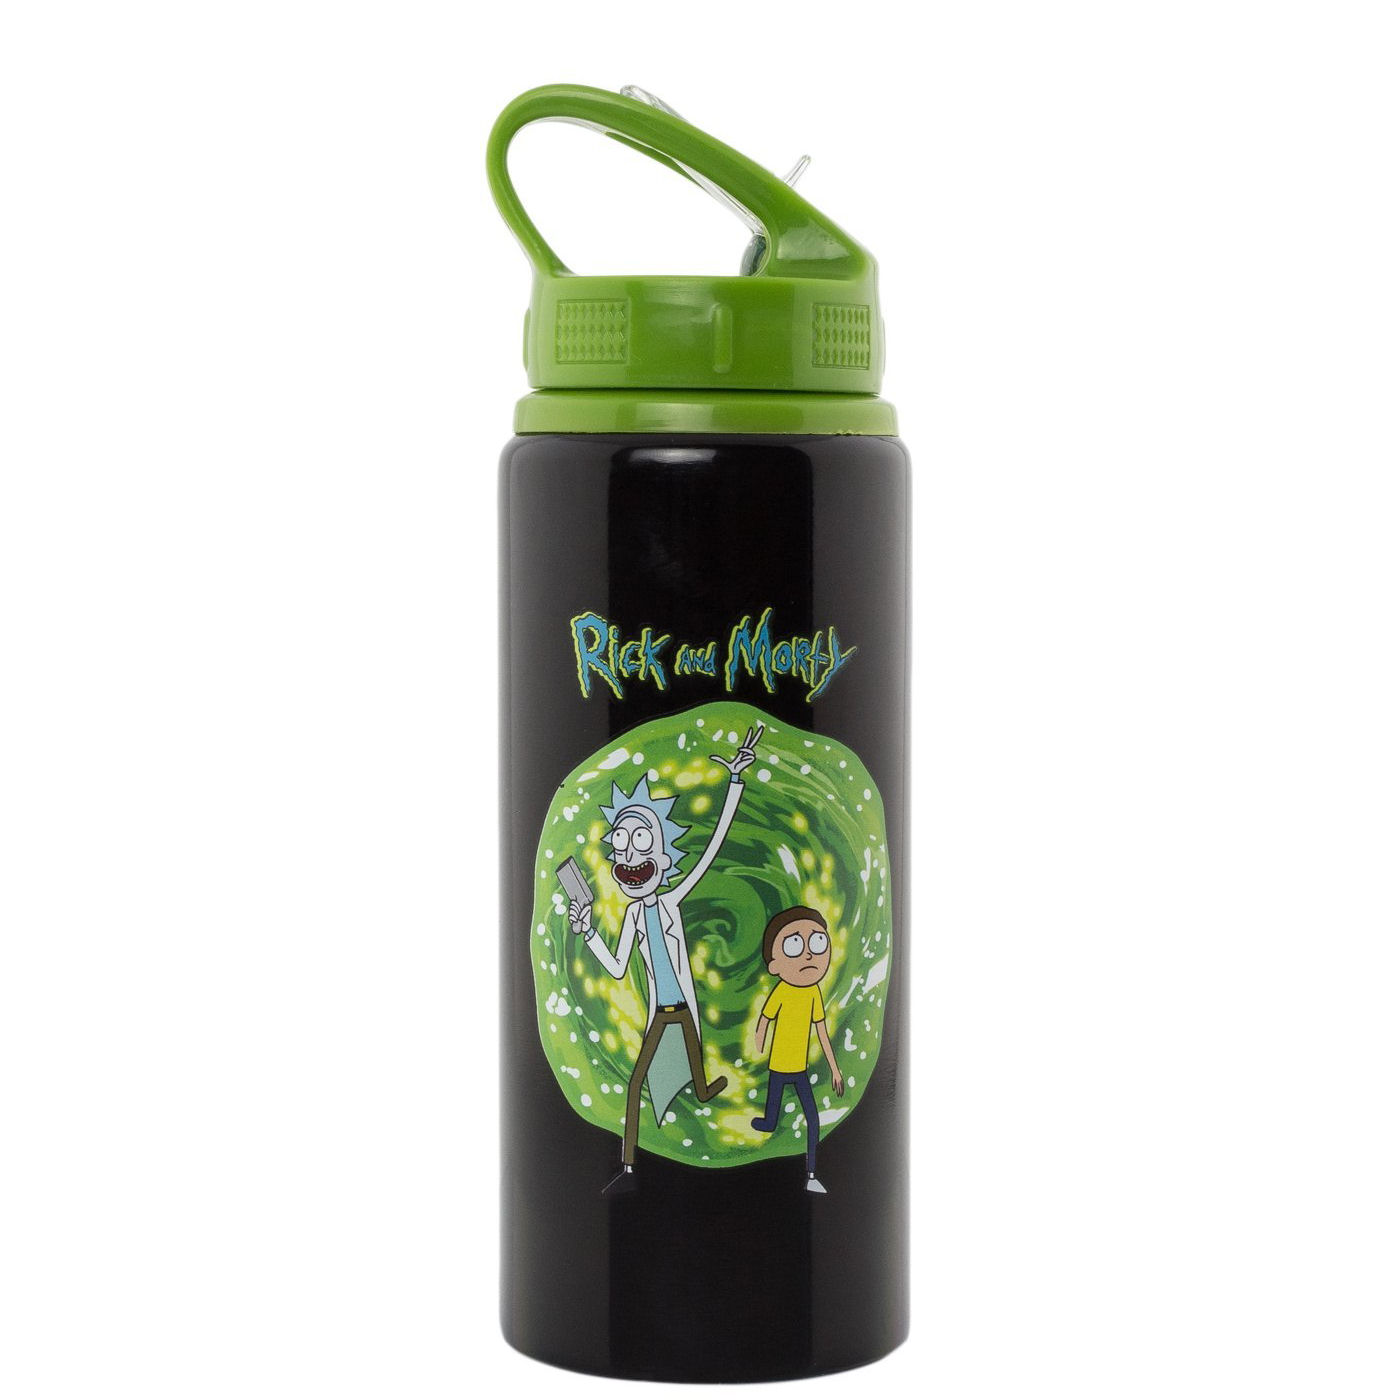 Rick & Morty Portal Water Bottle